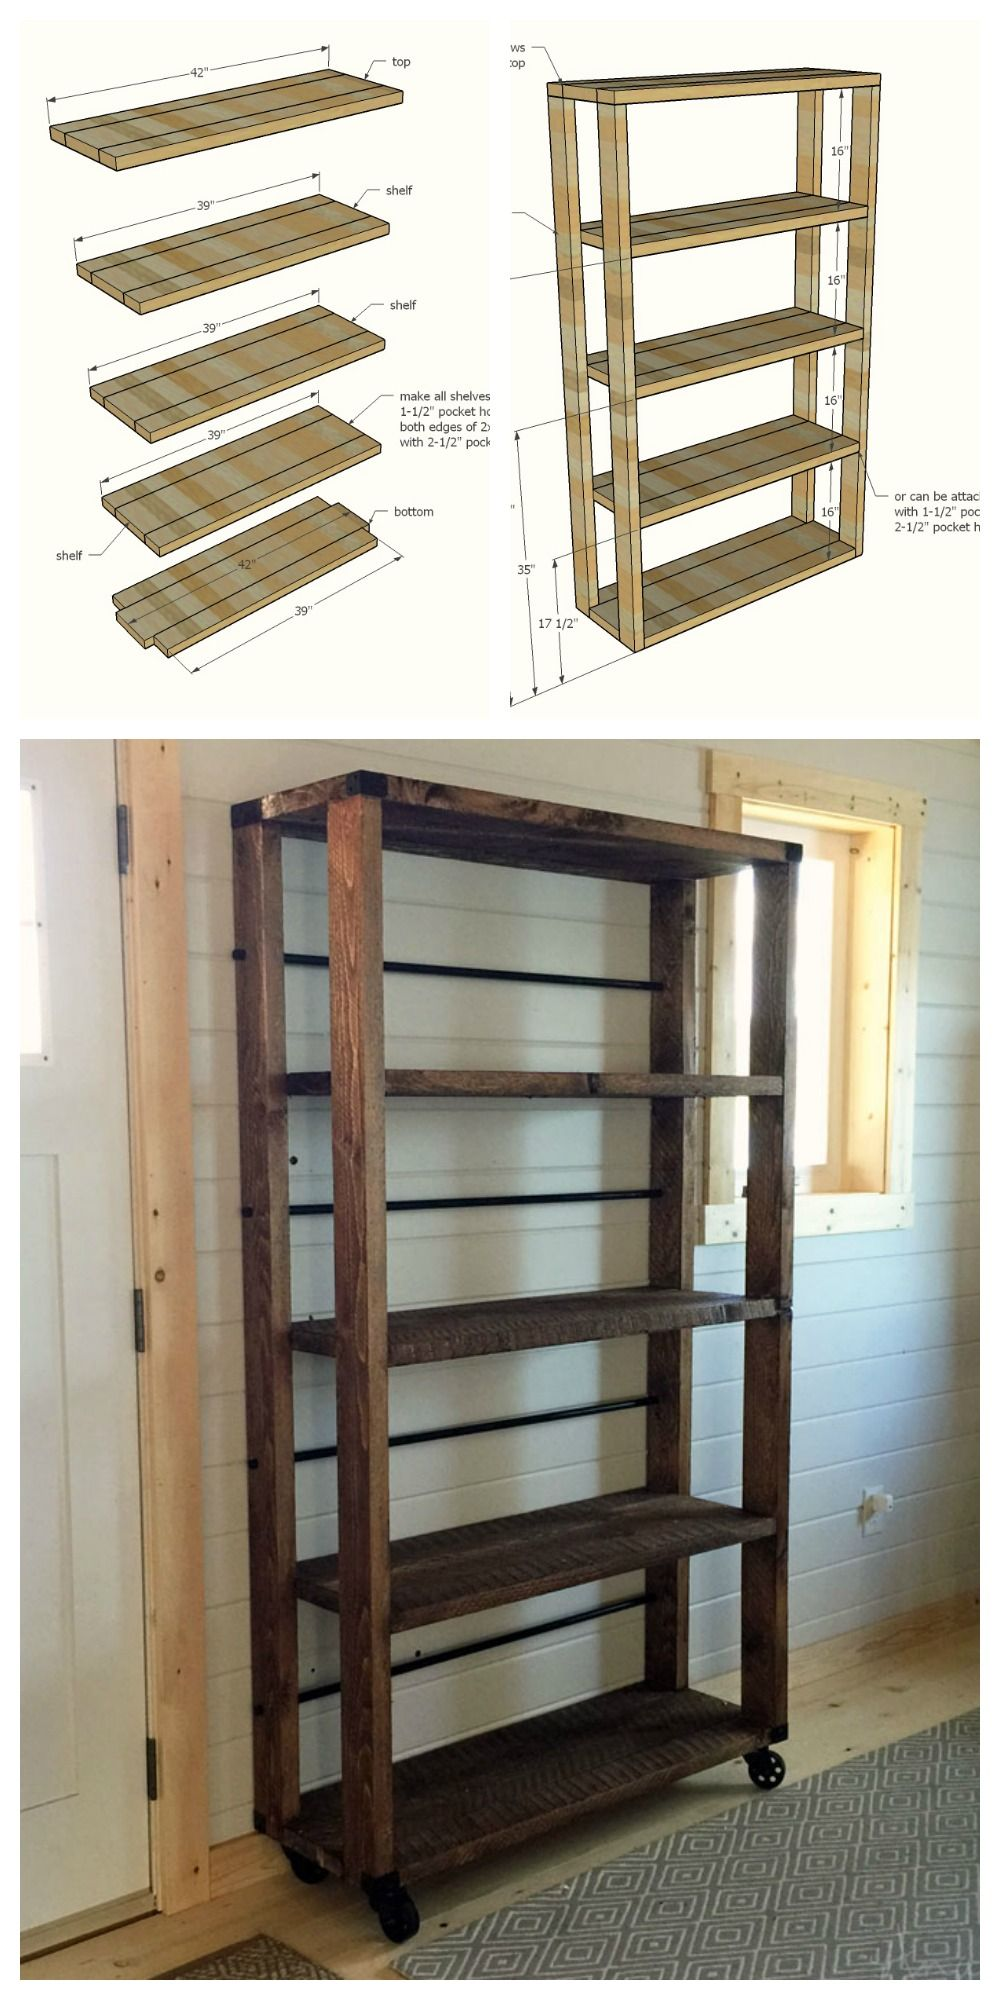 Ana white build a reclaimed wood rolling shelf free for Easy diy shelves